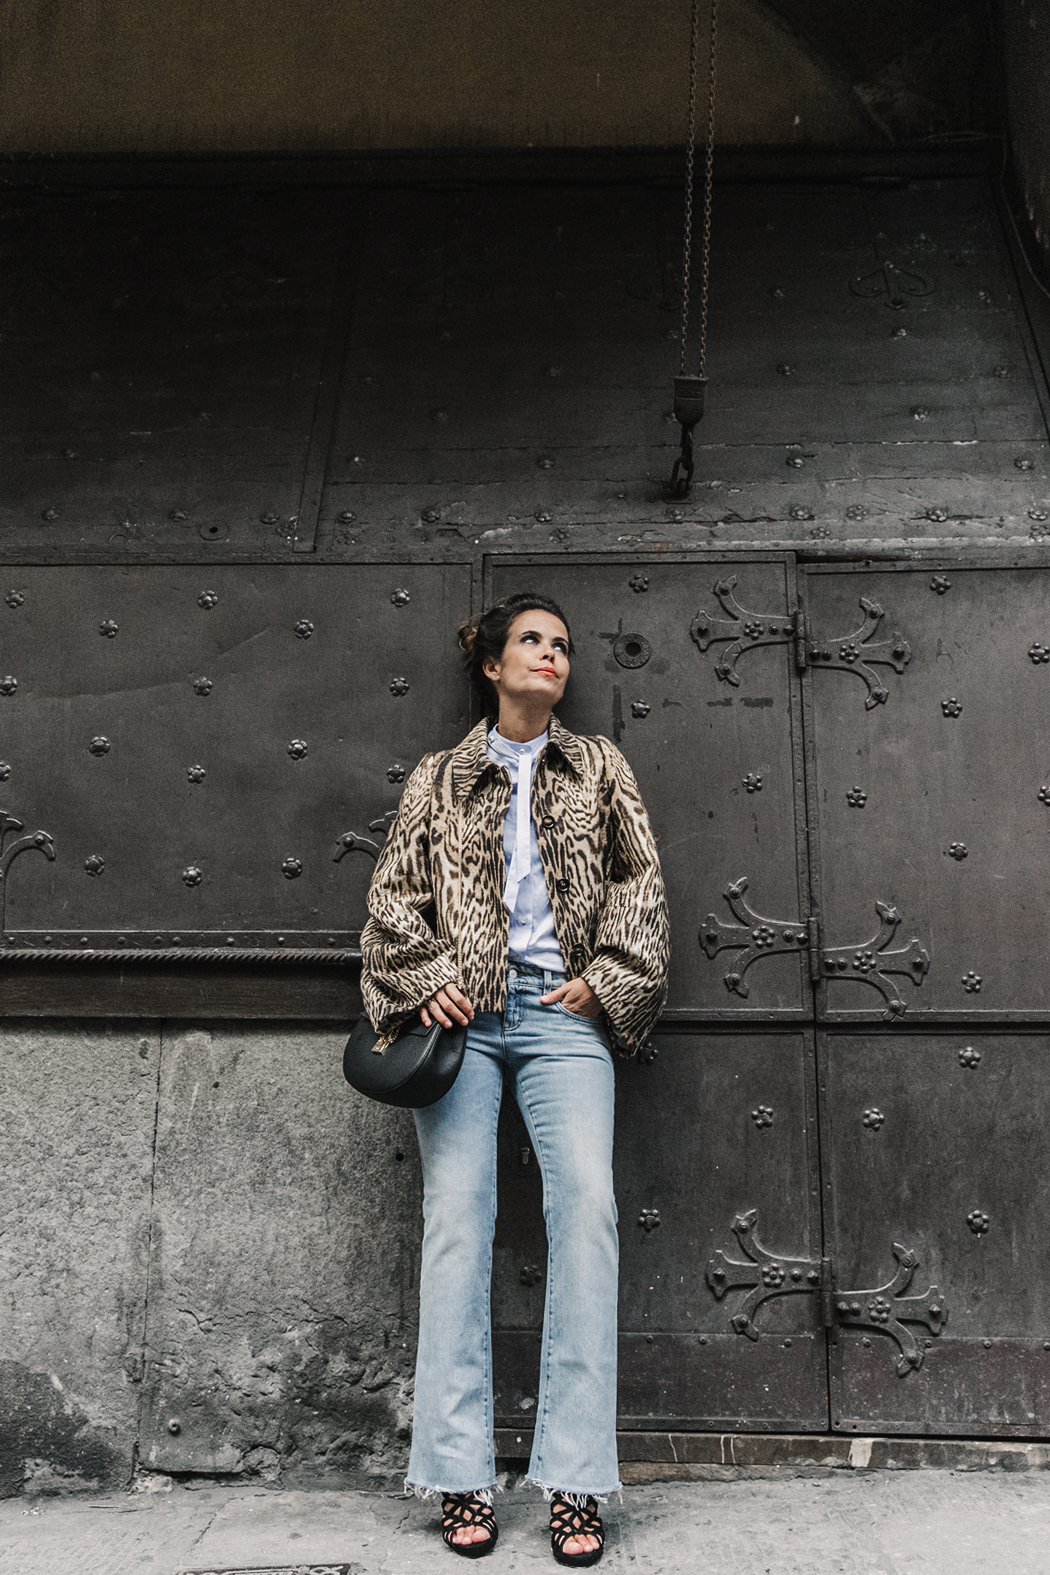 Firenze4Ever-Luisa_VIa_Roma-Chloe_Leopard_Jacket-Light_Blue_Blouse-Gucci_Jeans-_Look-Drew_Bag-Outfit-Florence-Street_Style-4